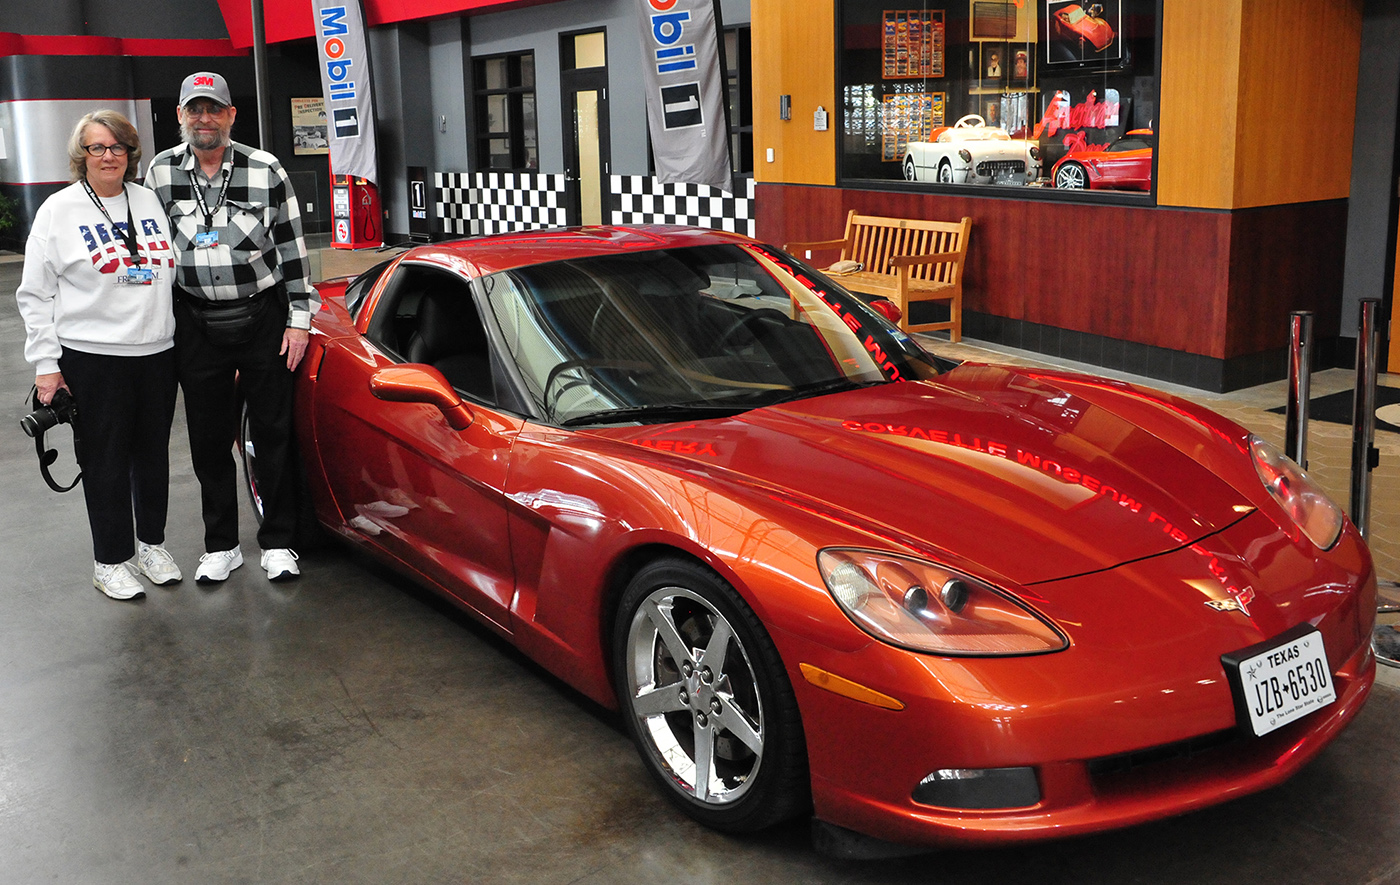 Lori and Ron Galt donate their 2005 Daytona Sunset Orange Corvette